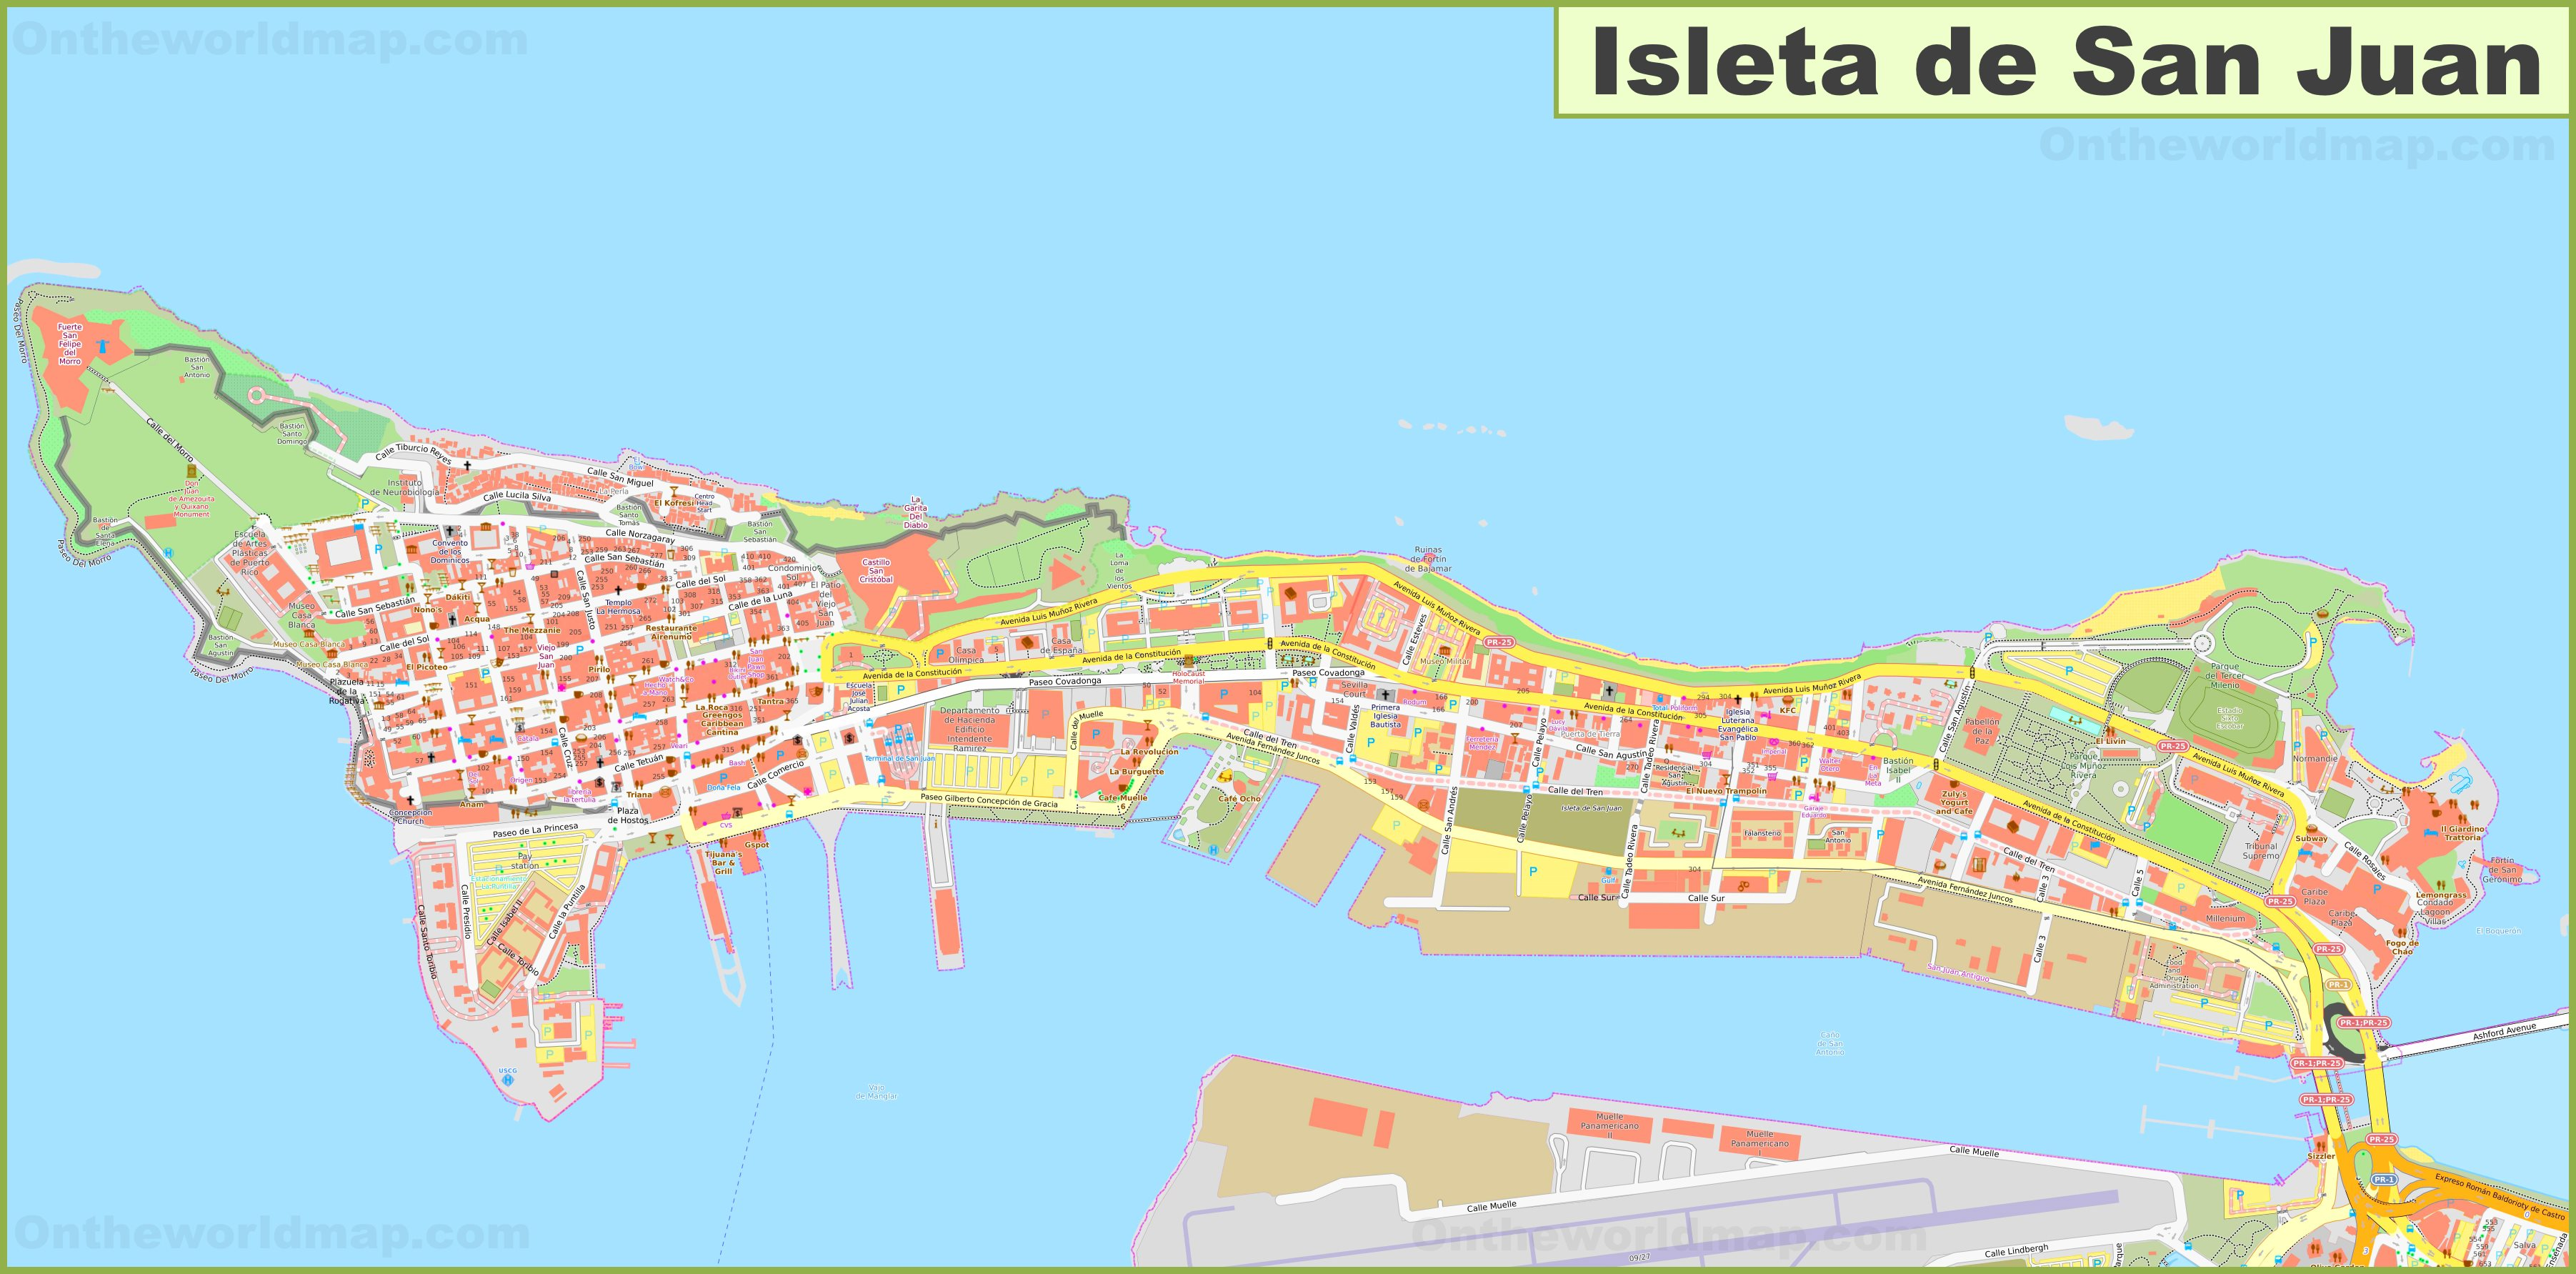 Detailed map of Isleta de San Juan